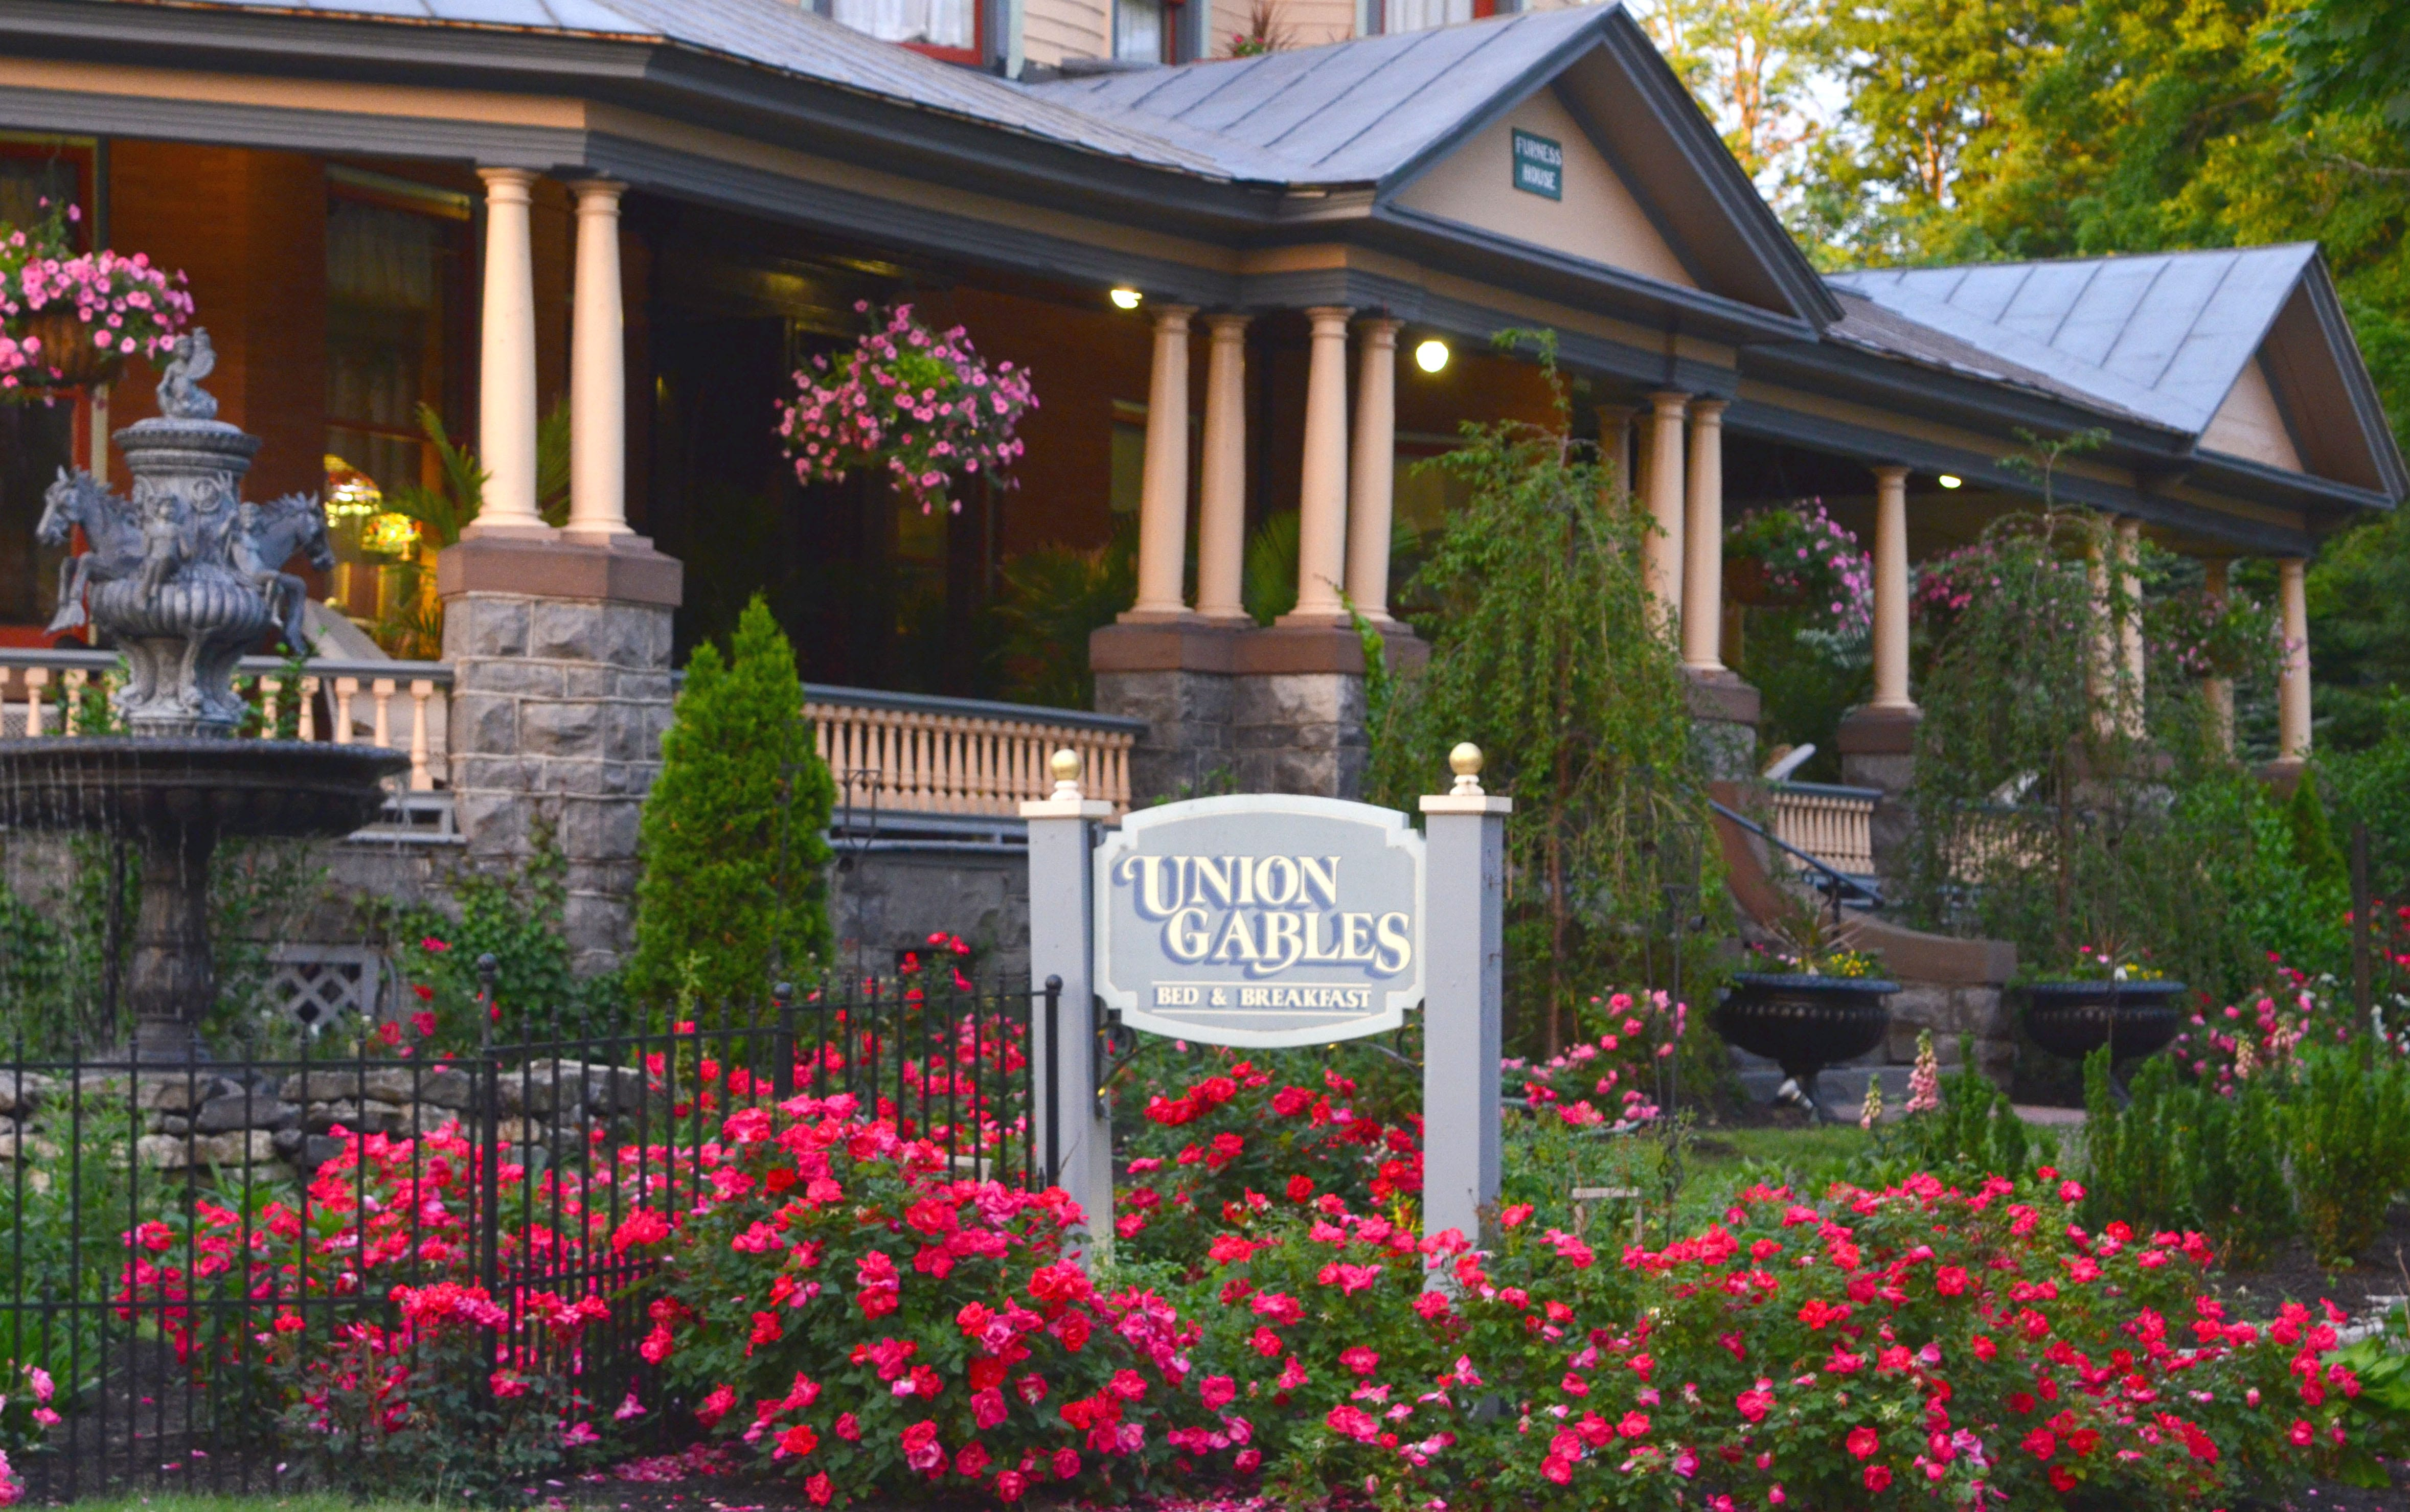 Union gables saratoga springs ny vacation rental guide for Luxury hotels in saratoga springs ny